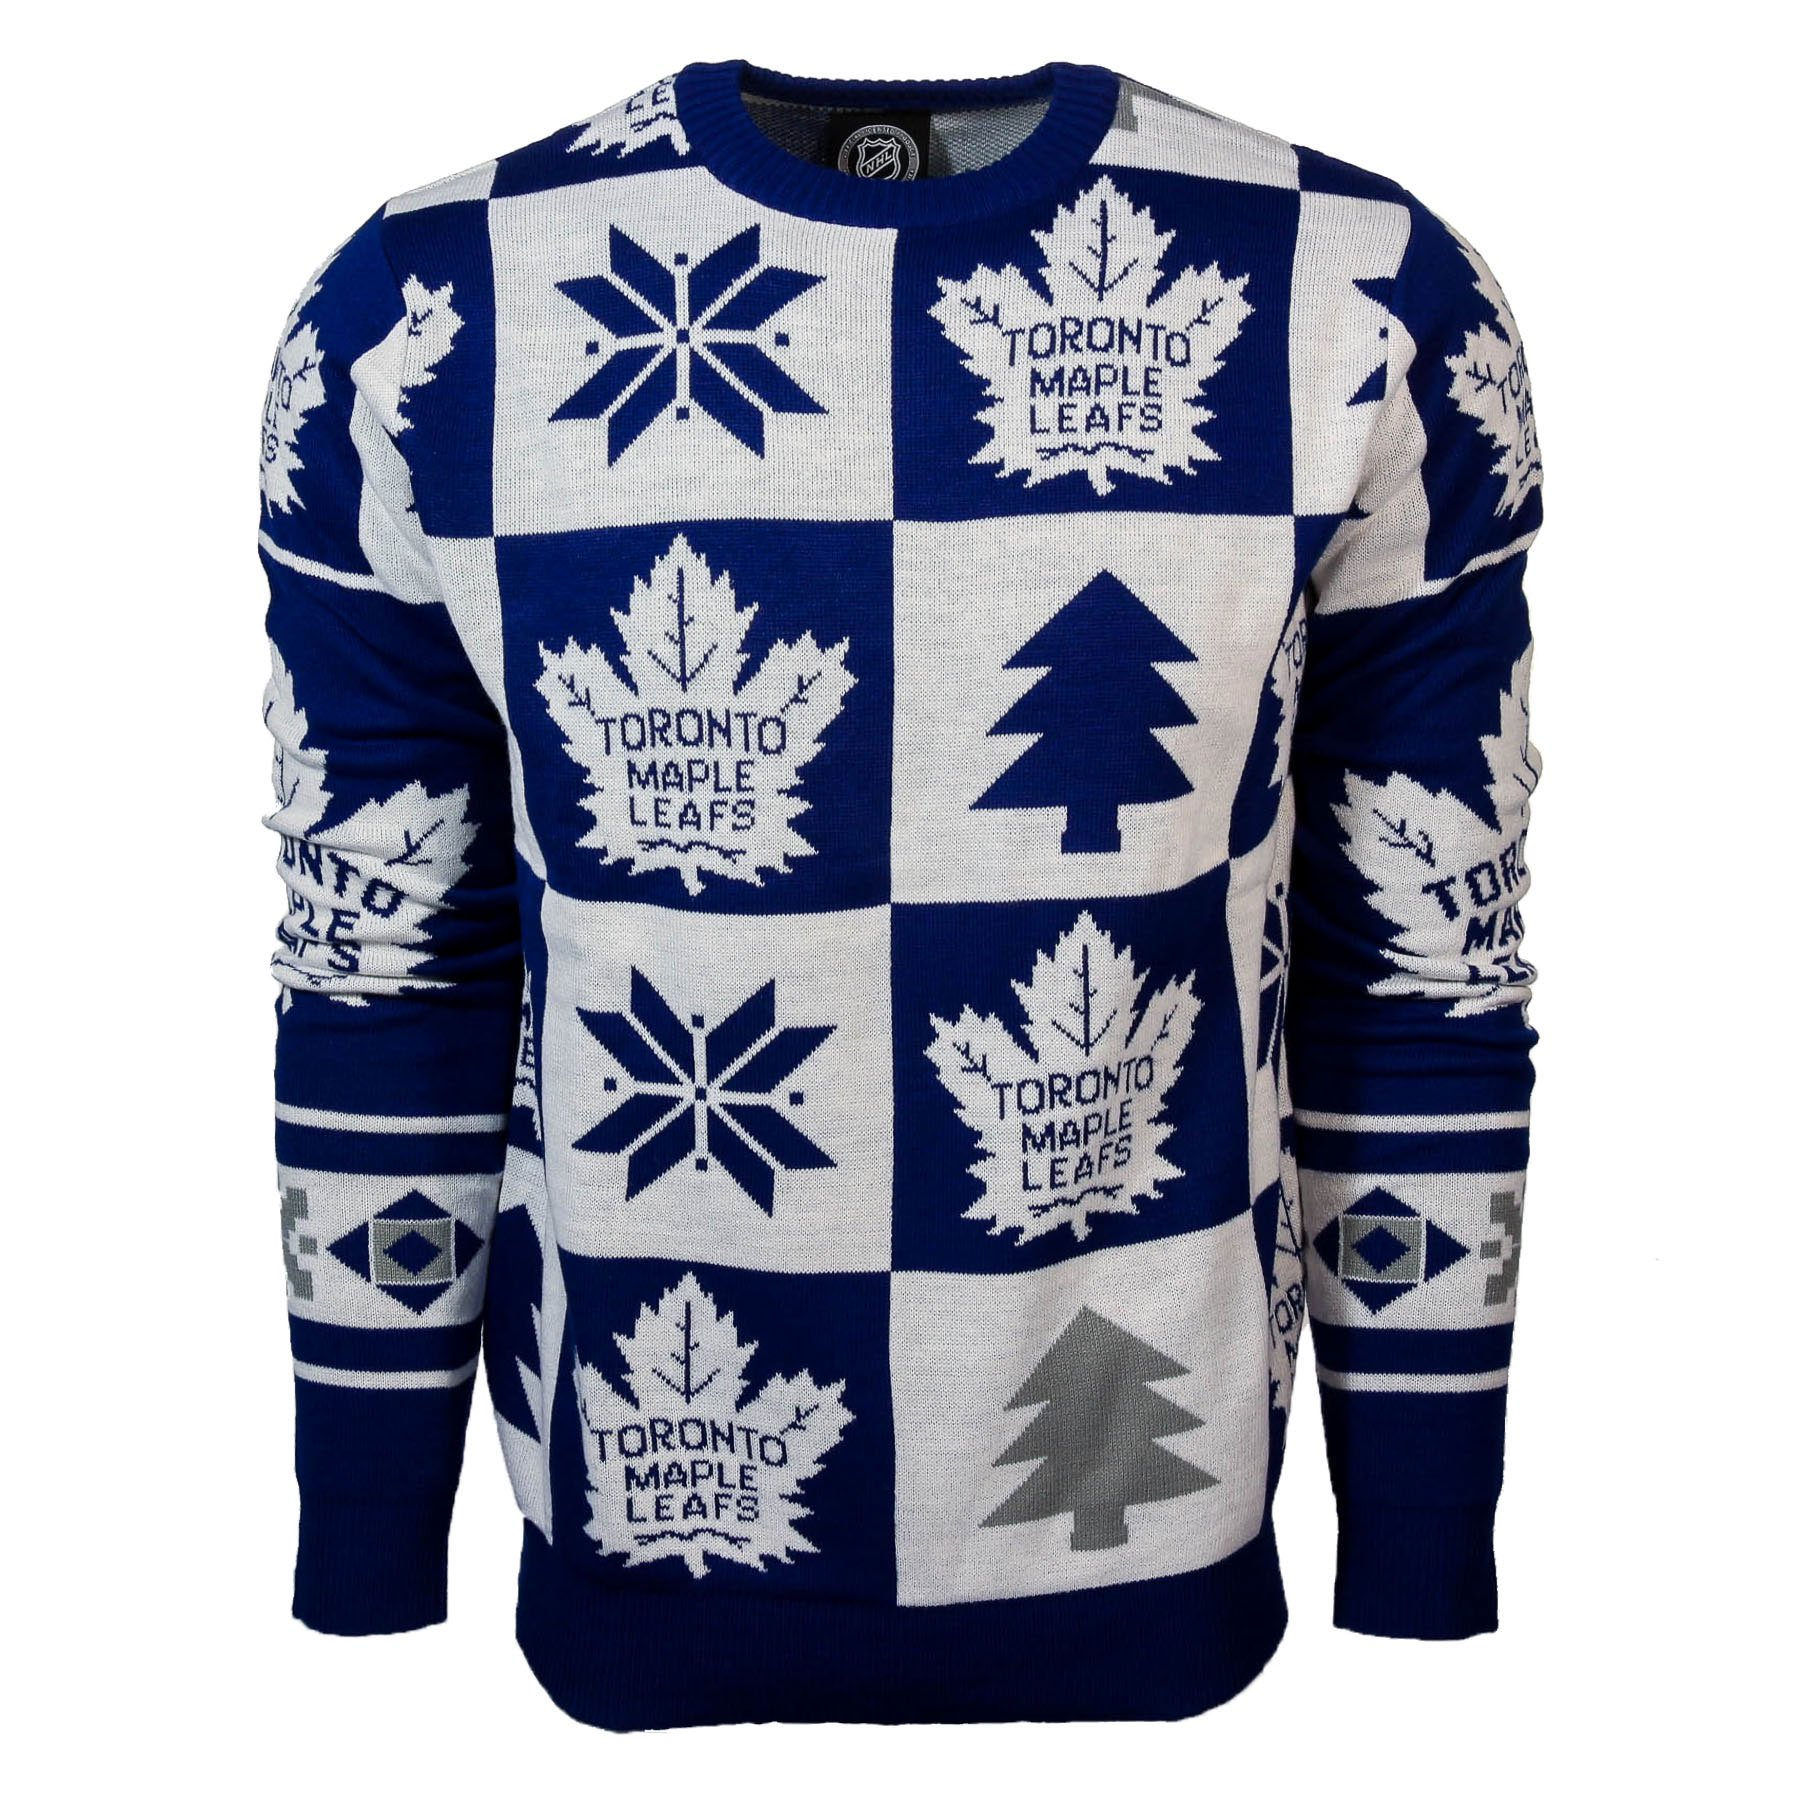 the best attitude e8ed6 170d7 Toronto Maple Leafs NHL Patches Ugly Crewneck Sweater ...